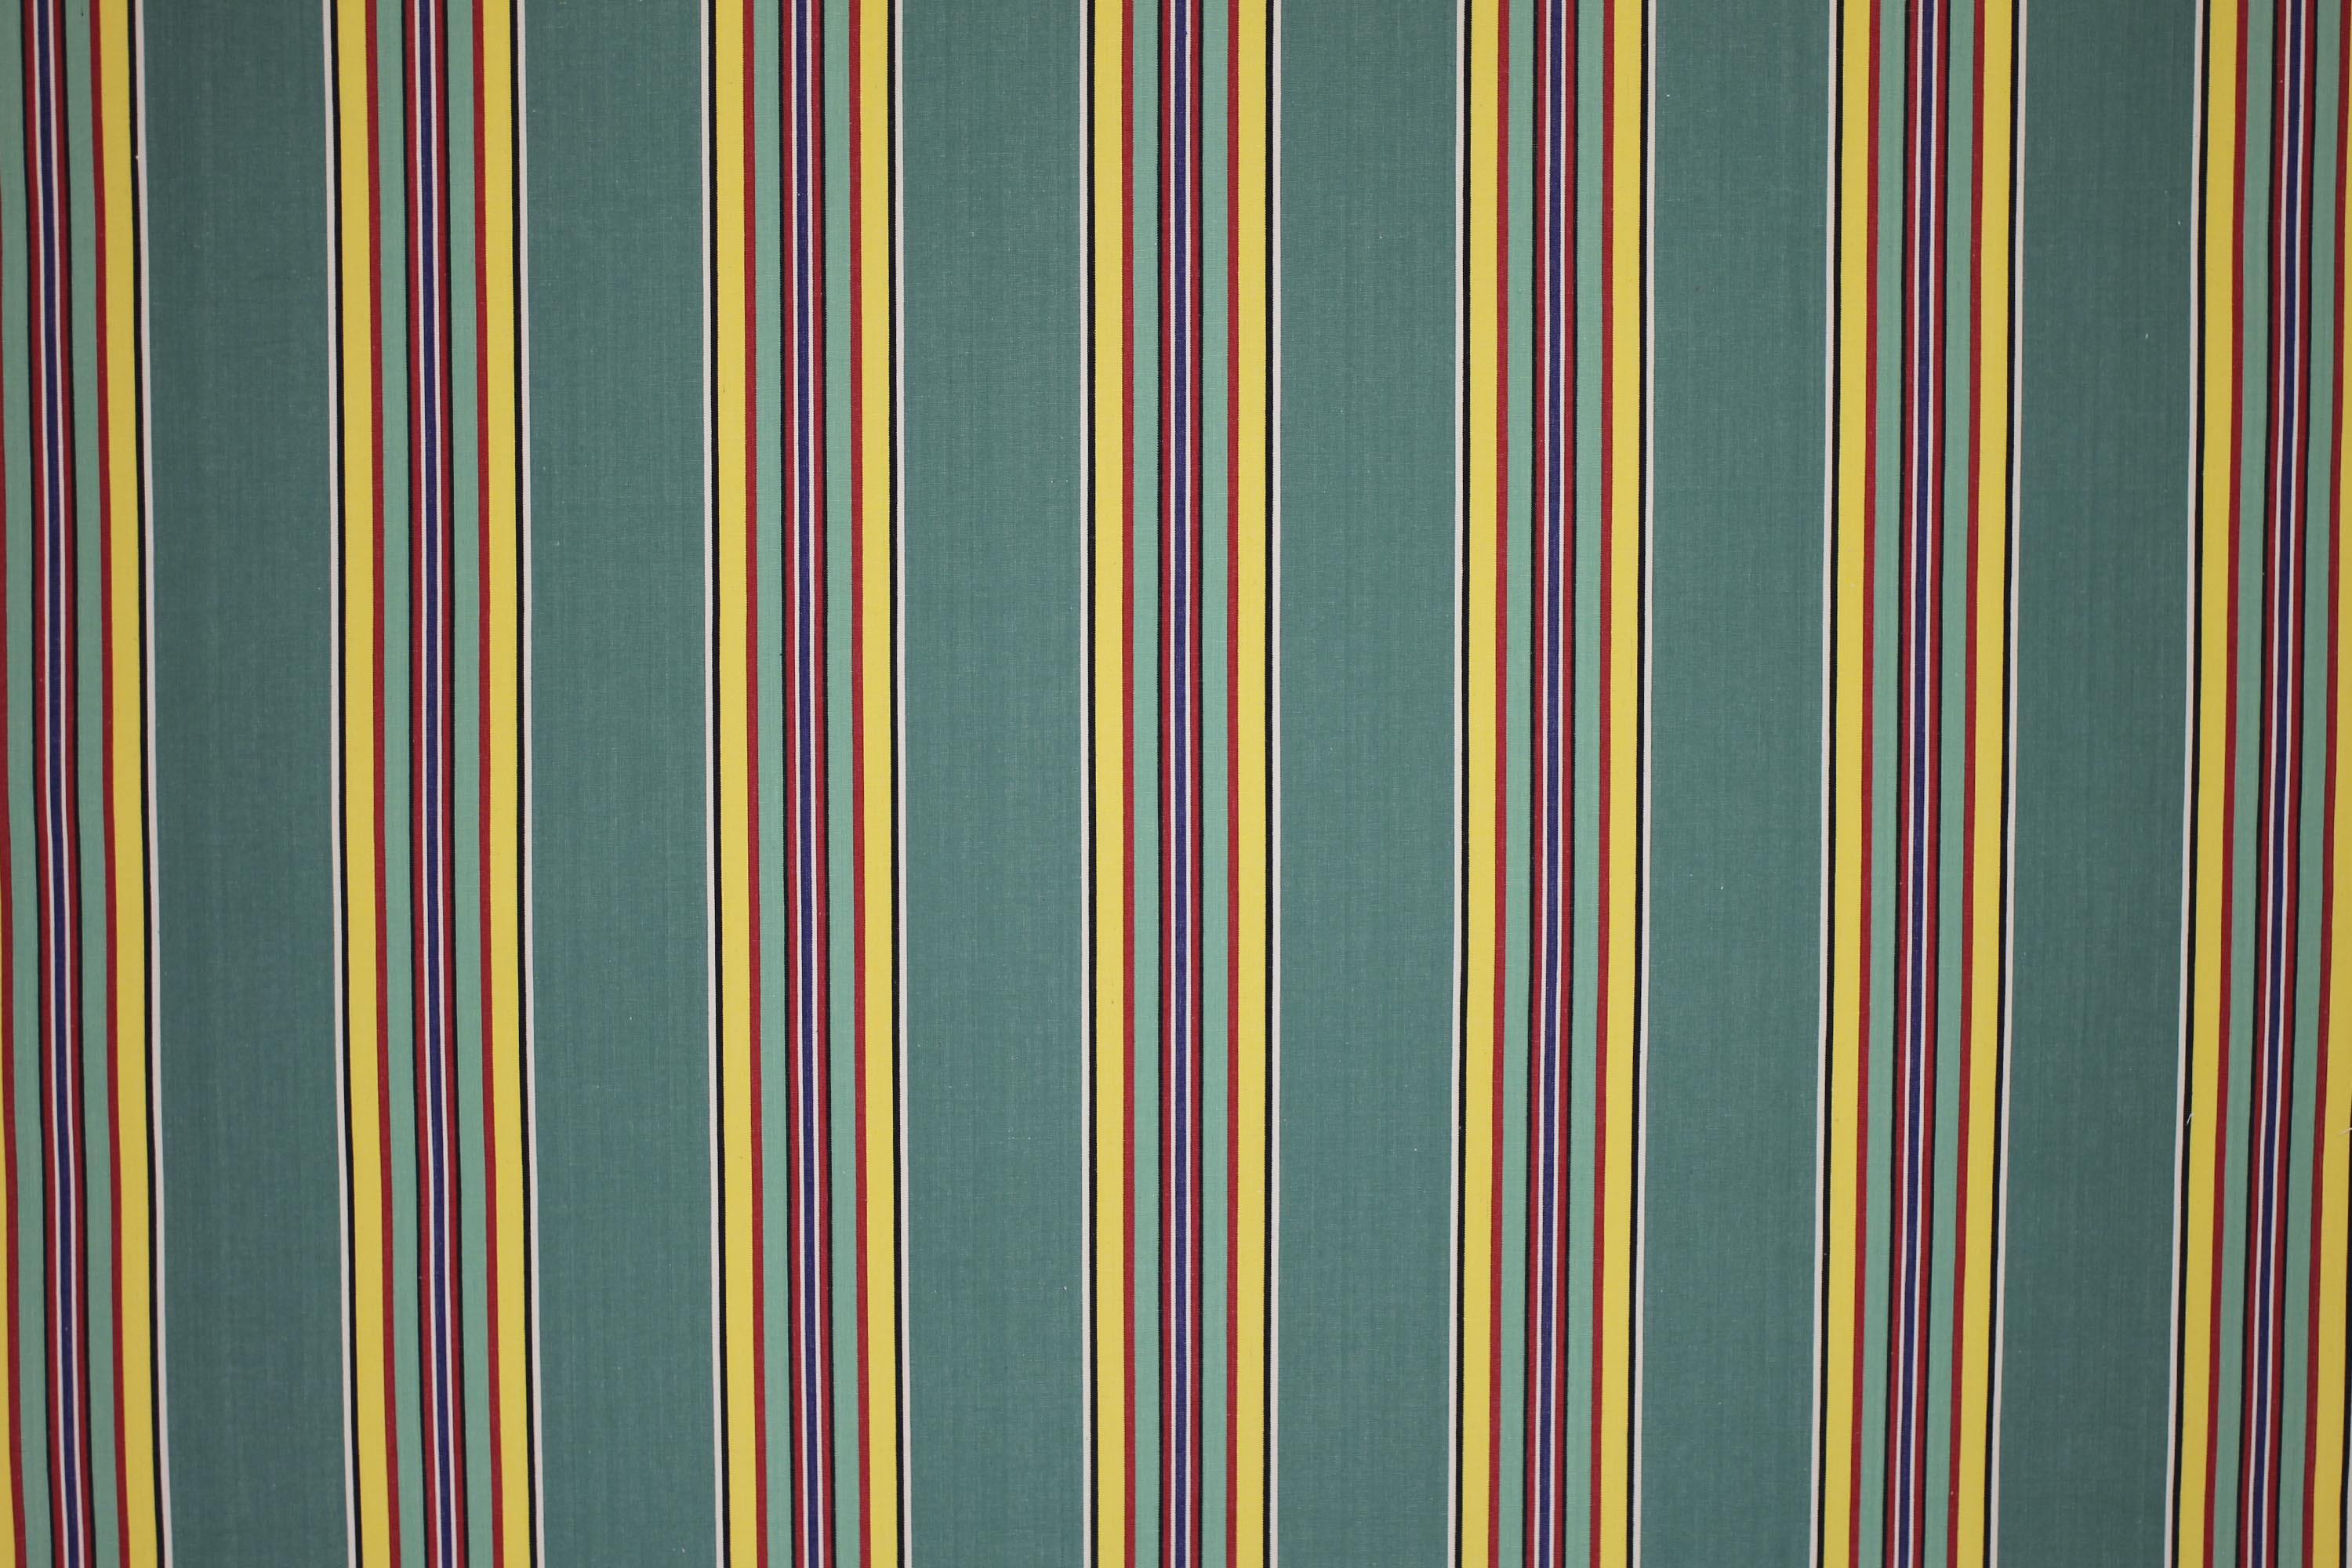 Green Striped Fabrics | Stripe Cotton Fabrics | Striped Curtain Fabrics | Upholstery Fabrics  Golf Stripes